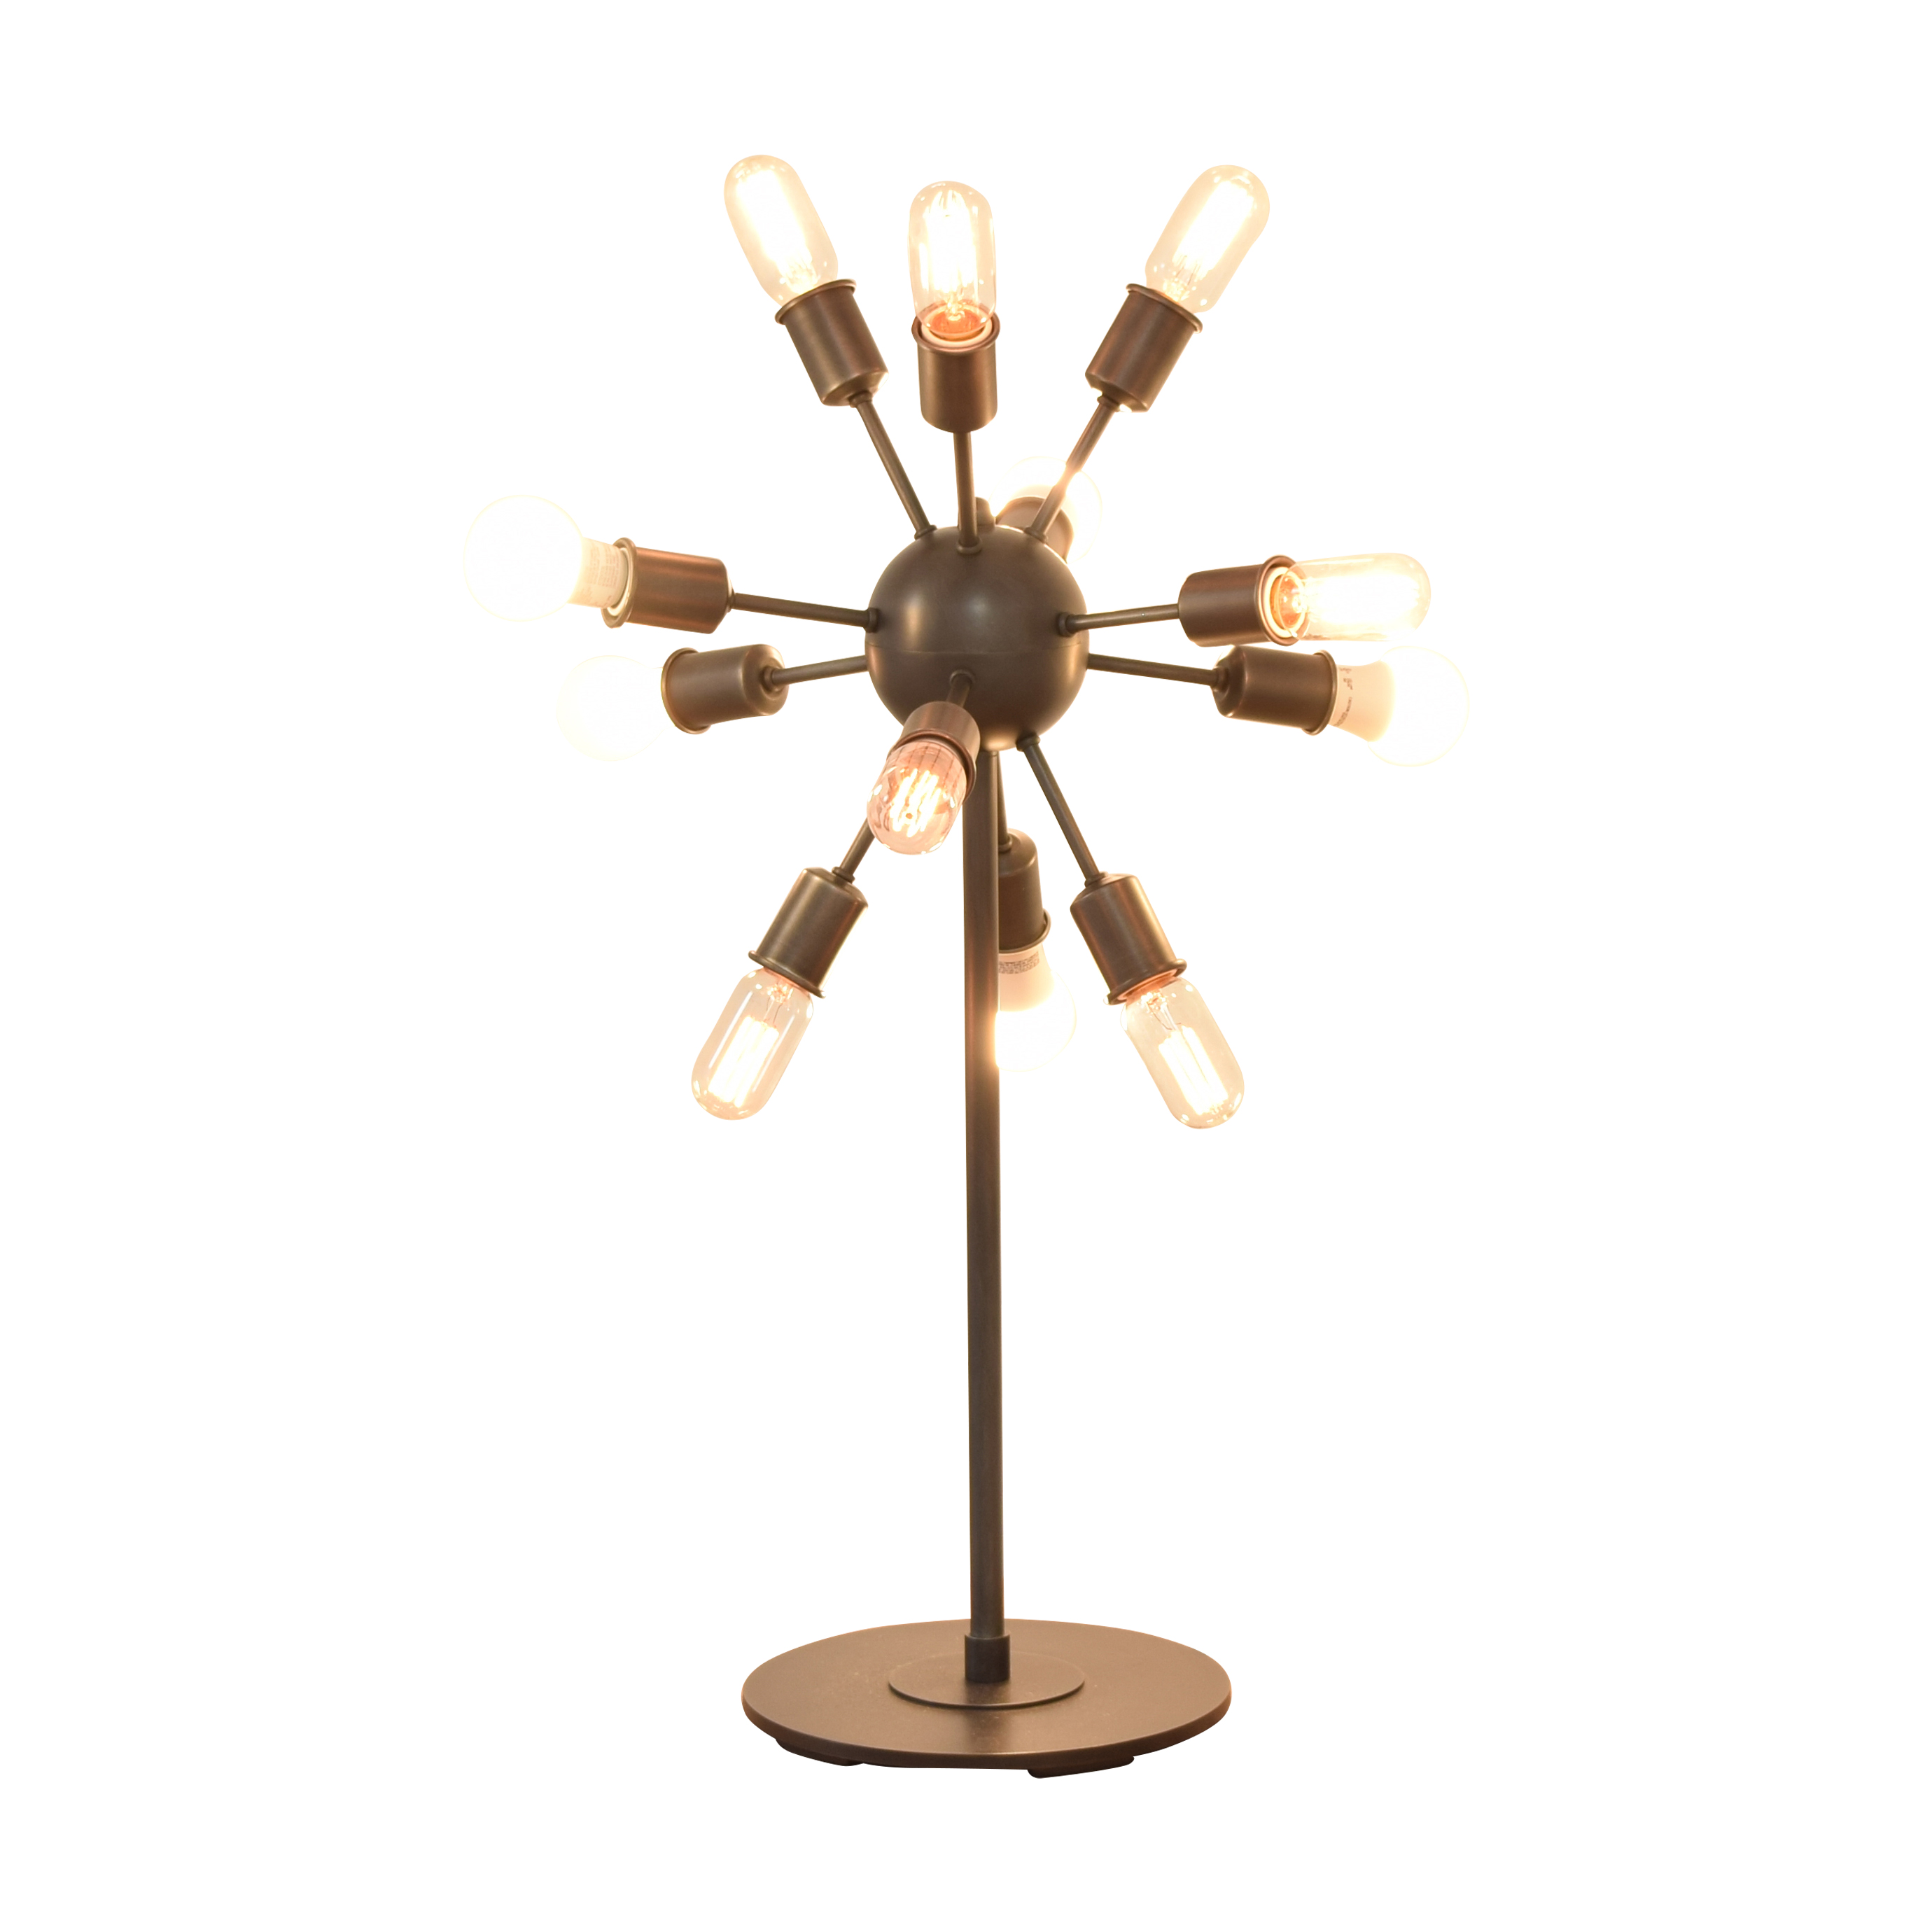 Restoration Hardware Restoration Hardware Sputnik Table Lamp